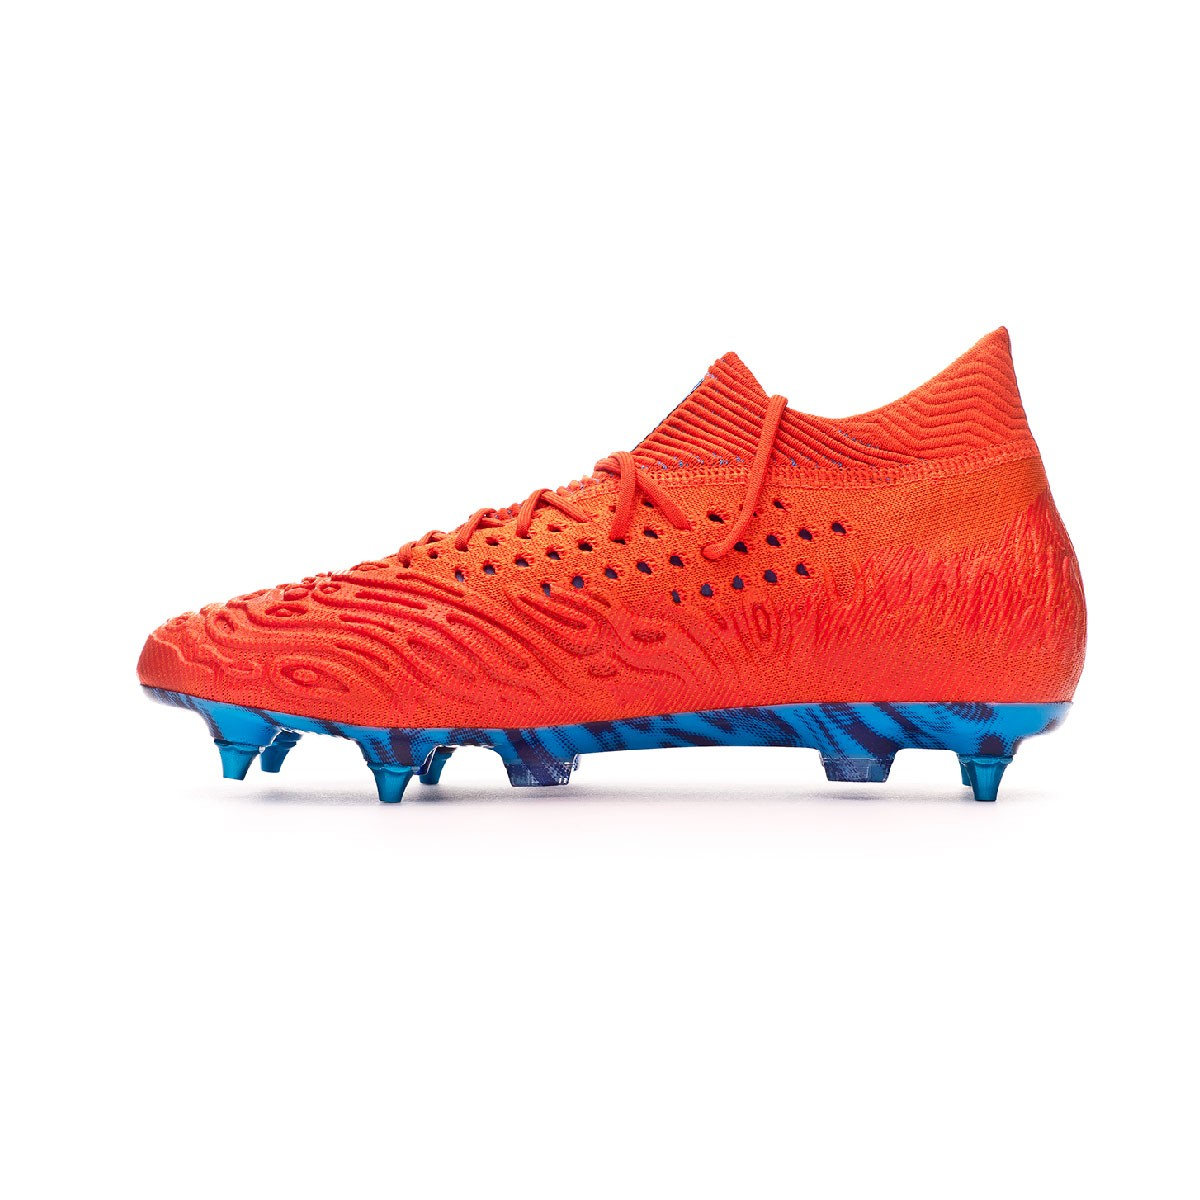 Puma Future 19.1 Netfit Mx SG Football Boots